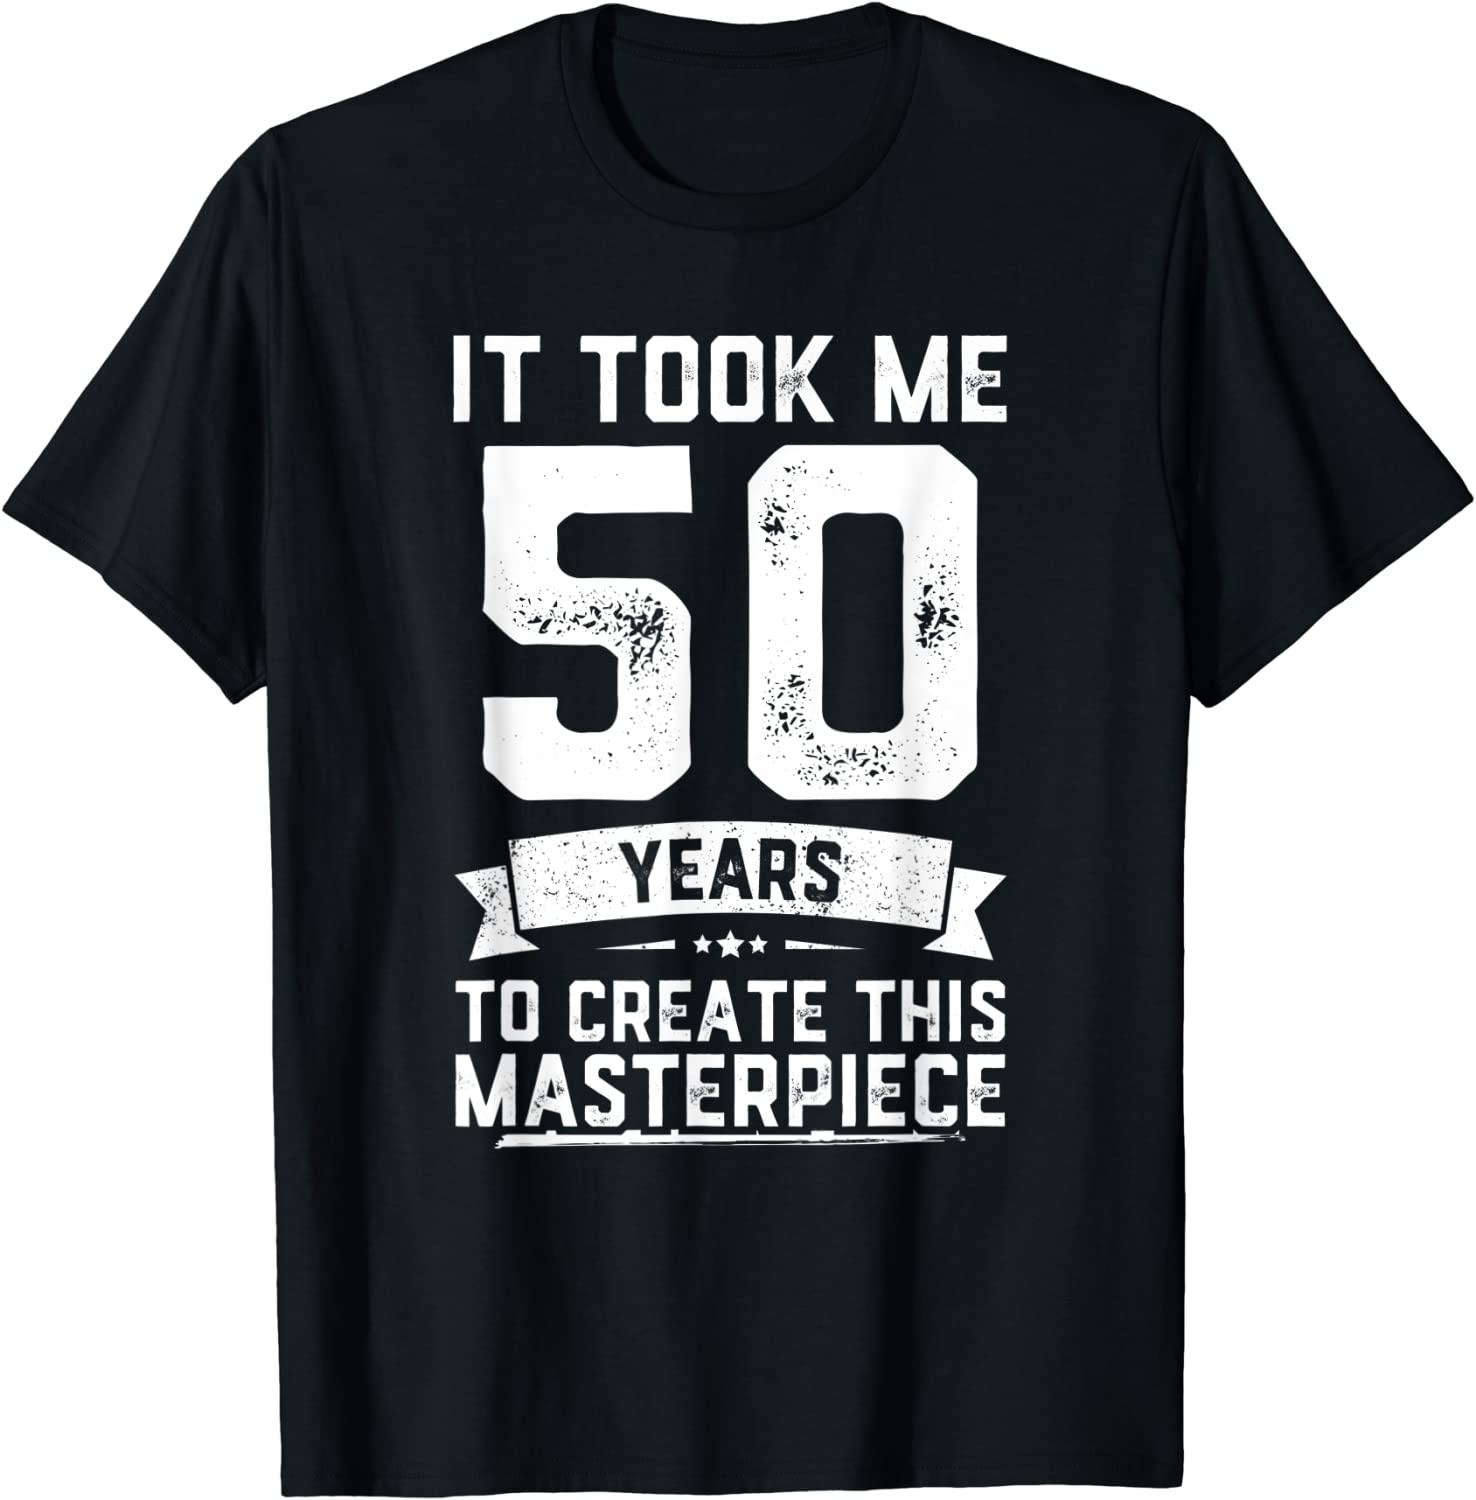 THIS GUY IS FIFTY funny 50th birthday tee xmas gift idea mens new top T SHIRT